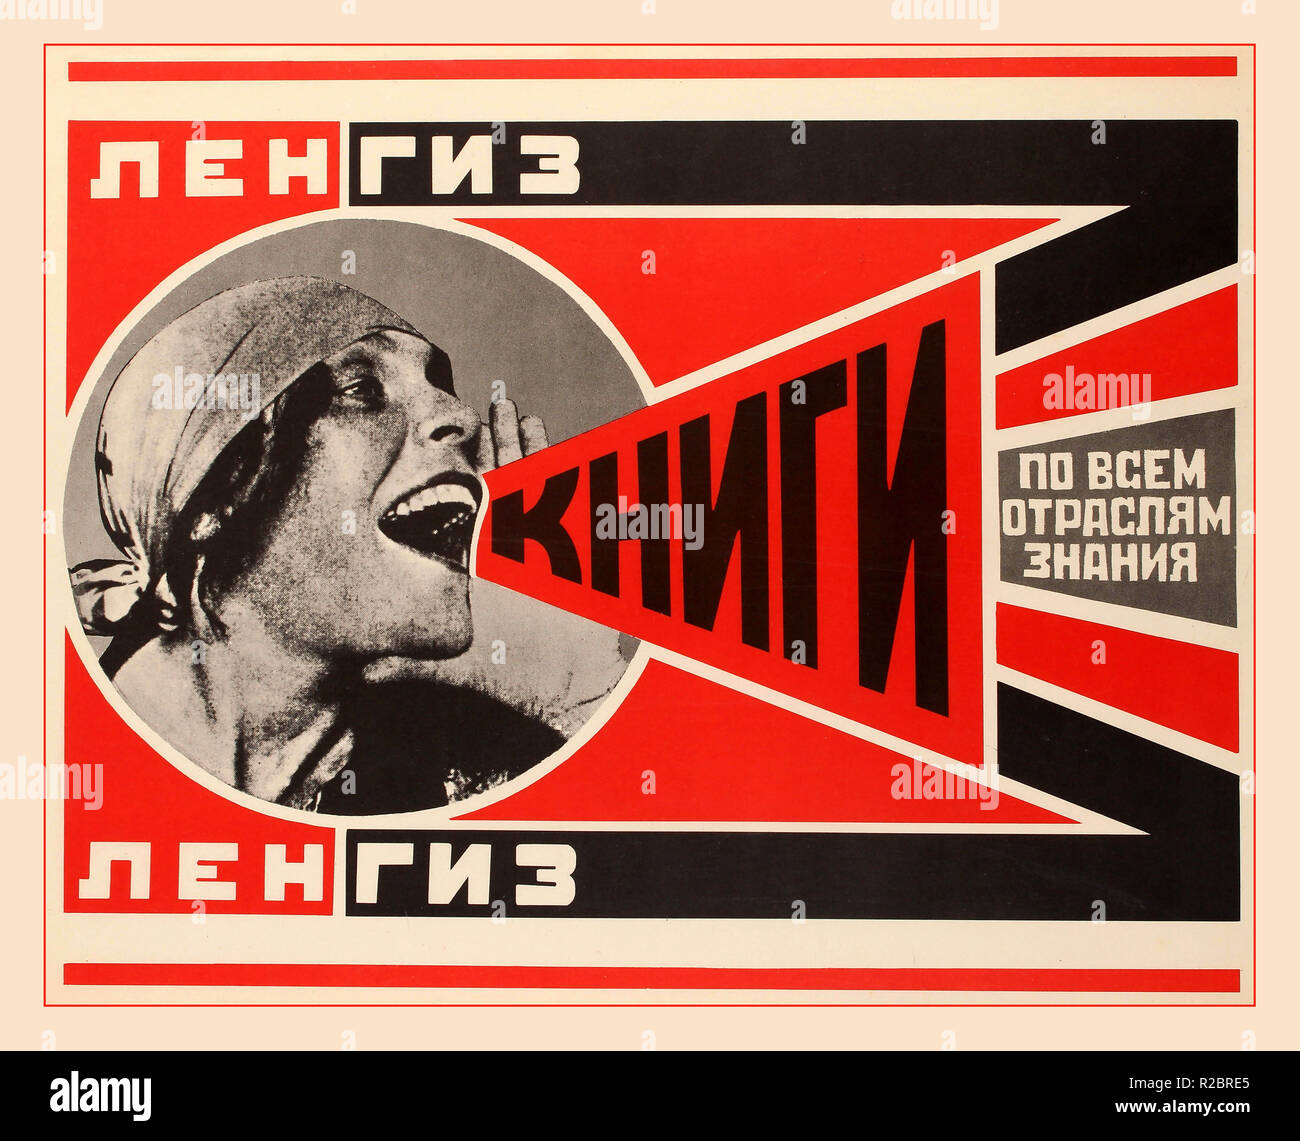 Vintage 1920's Soviet Poster 'Books! In a field of knowledge'  press propaganda poster for Soviet publisher LENGIZ, designed by A.M. Rodchenko featuring a portrait of Lilya Brik. Soviet propaganda to get people to read books to improve literarcy - Stock Image